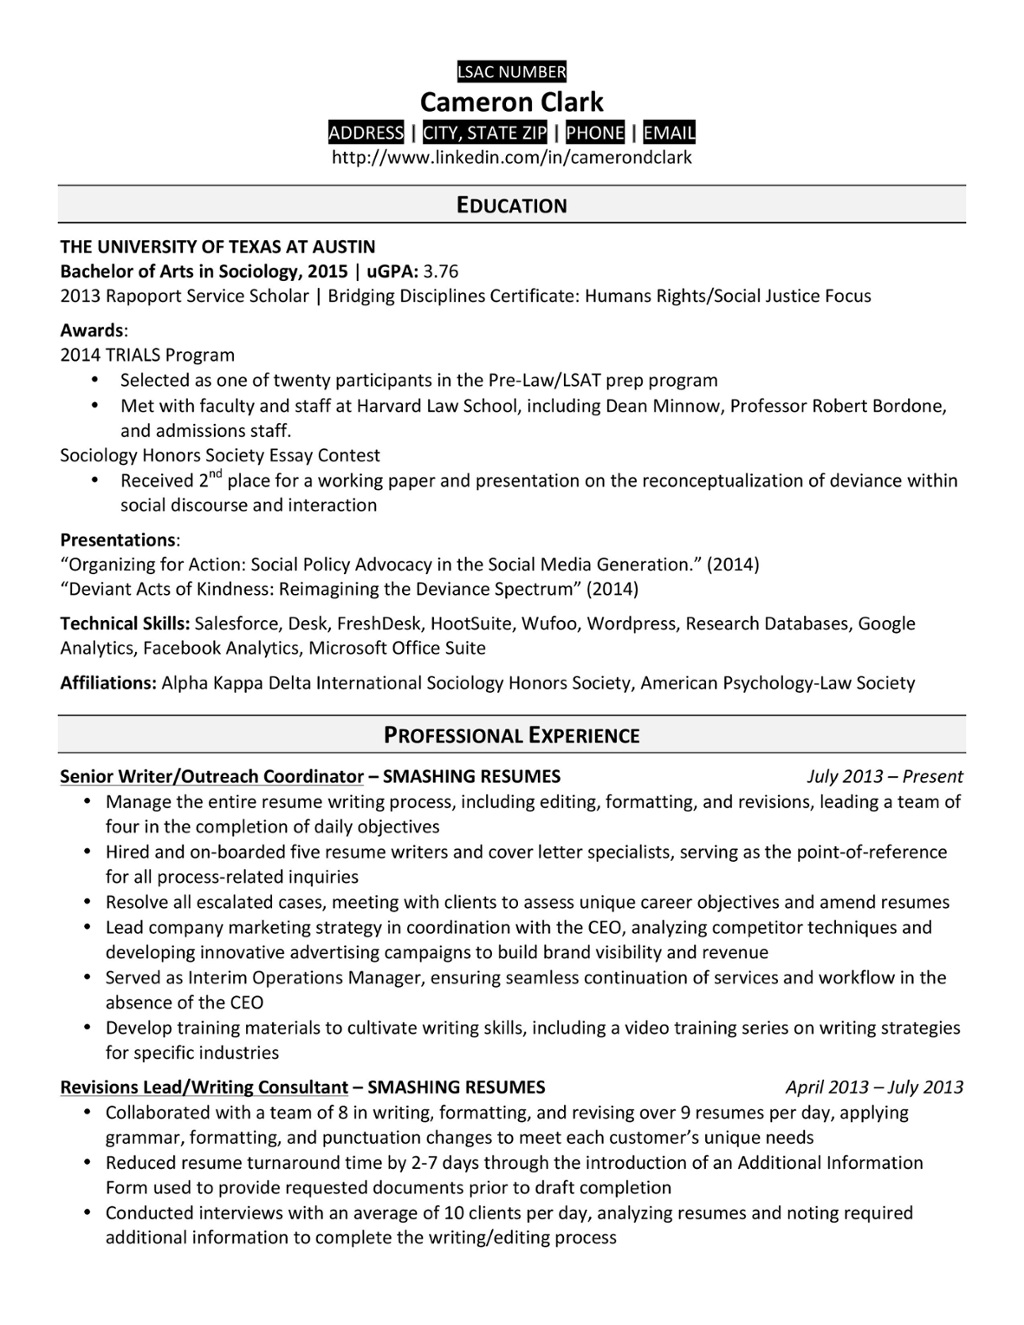 a law school resume that made the cut top law schools us news - Law School Resume Examples